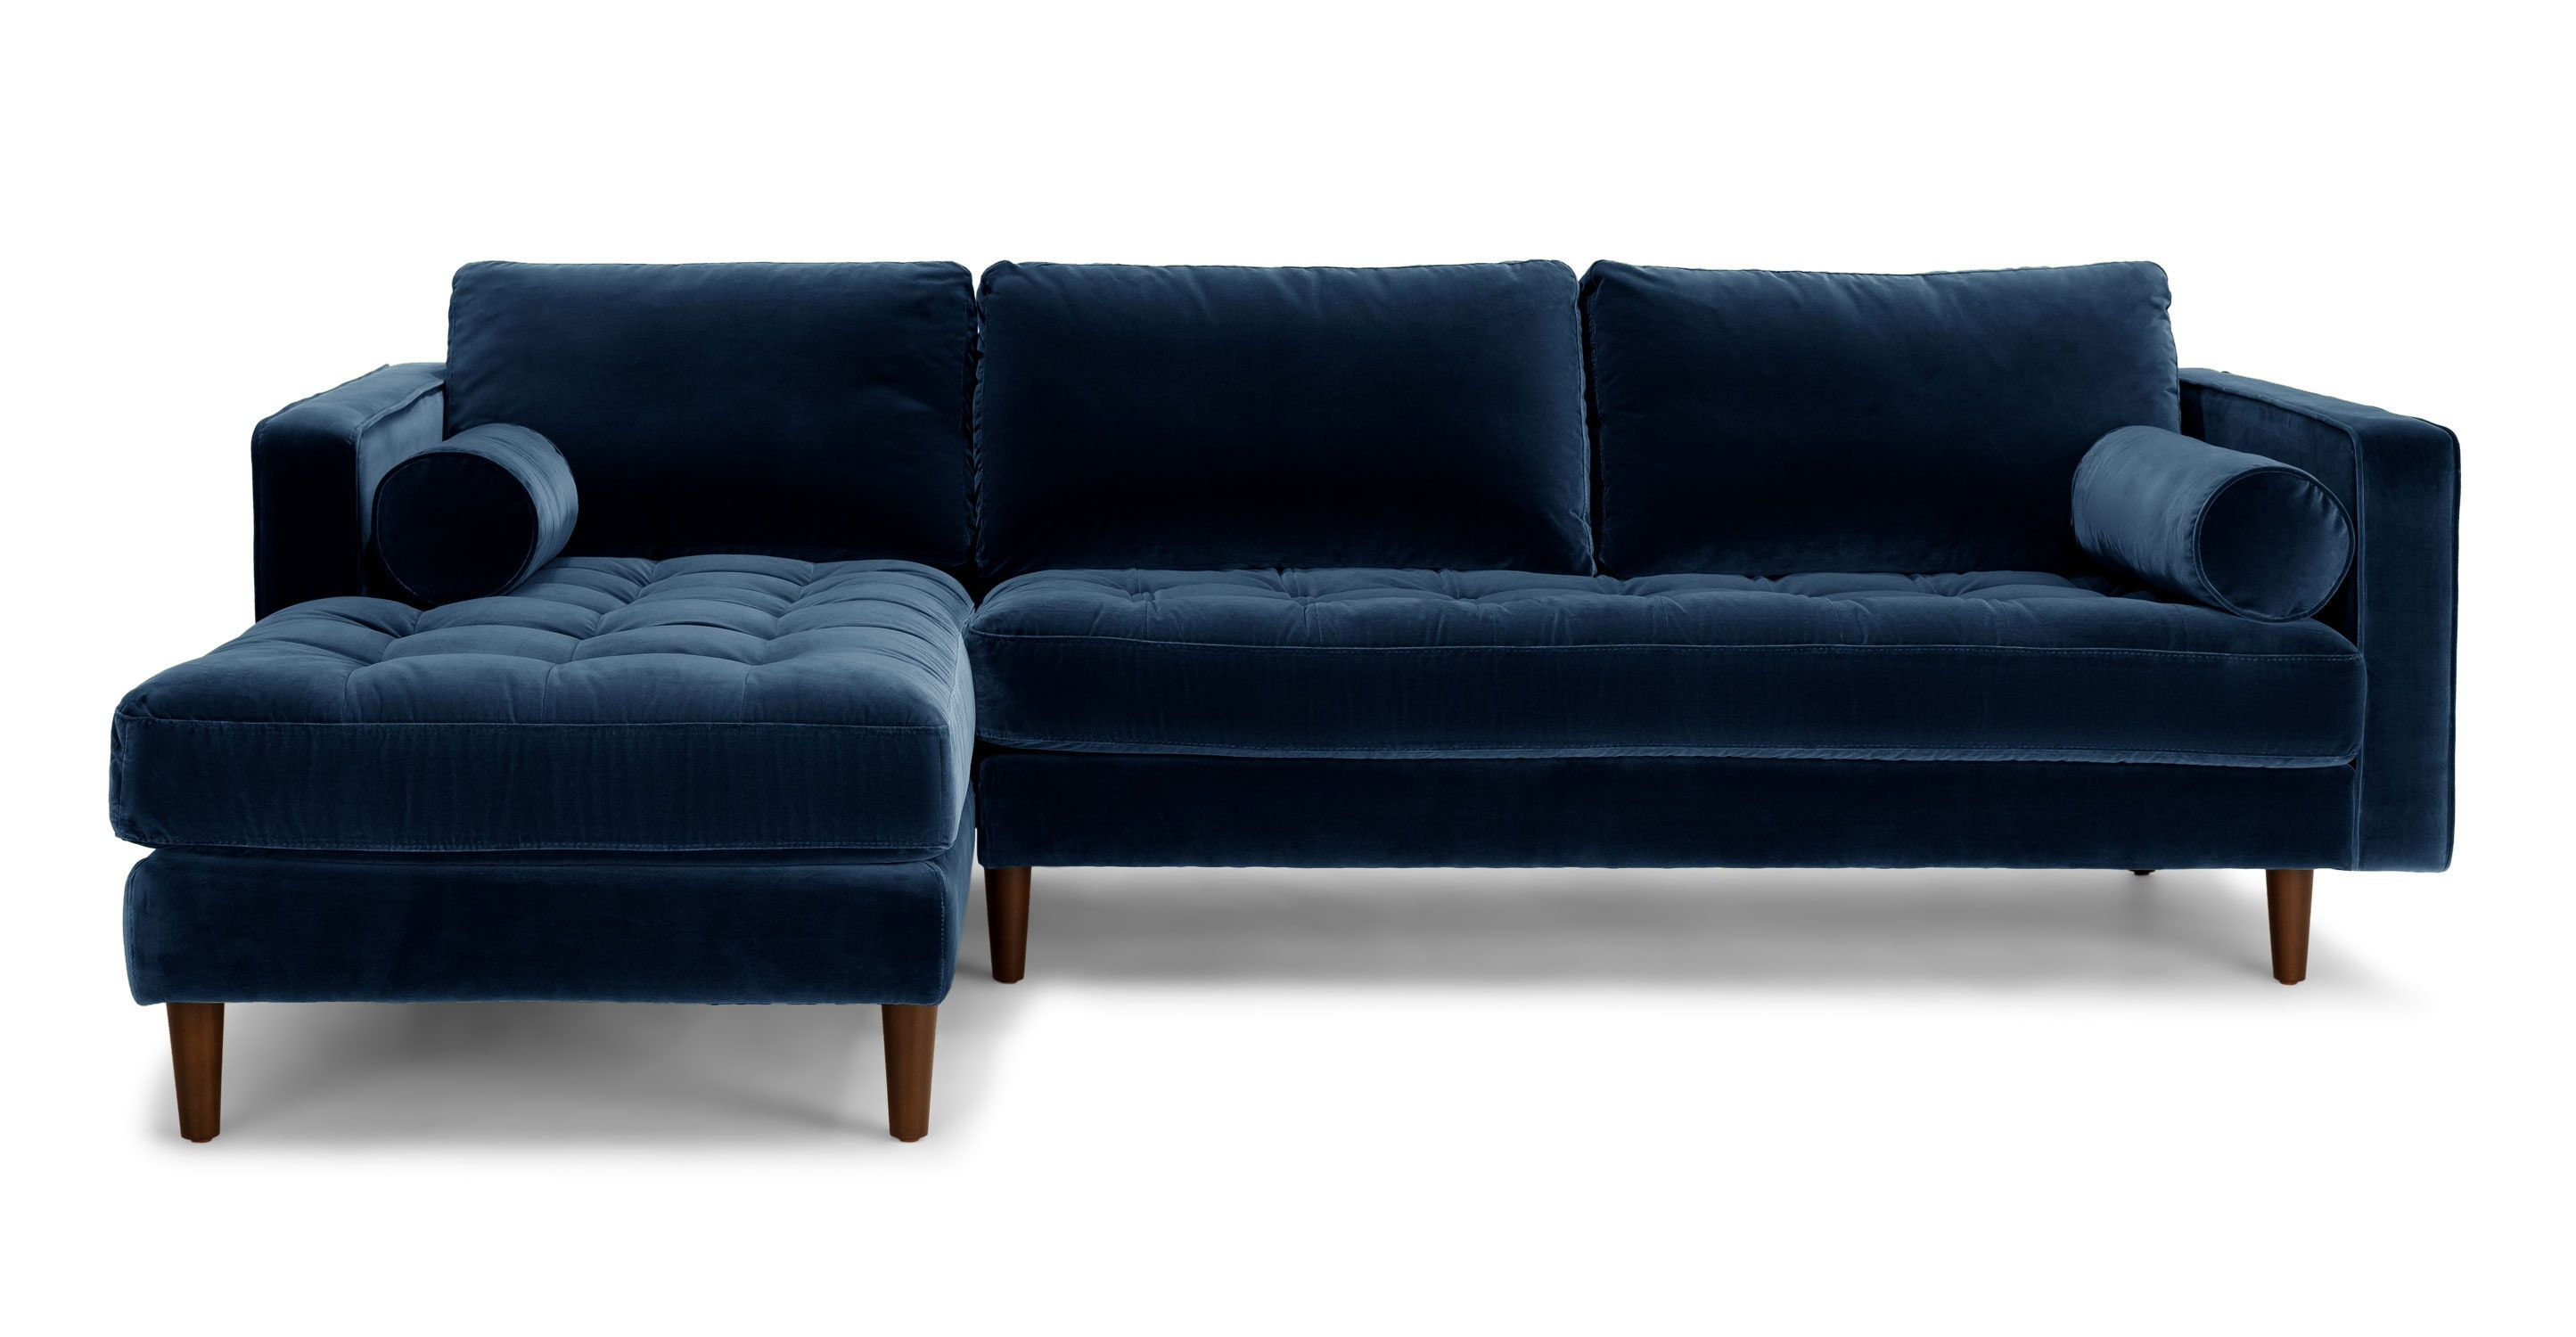 Sven Cascadia Blue Left Sectional Sofa Sectionals Article Modern Mid Century And Scandinavian Furniture